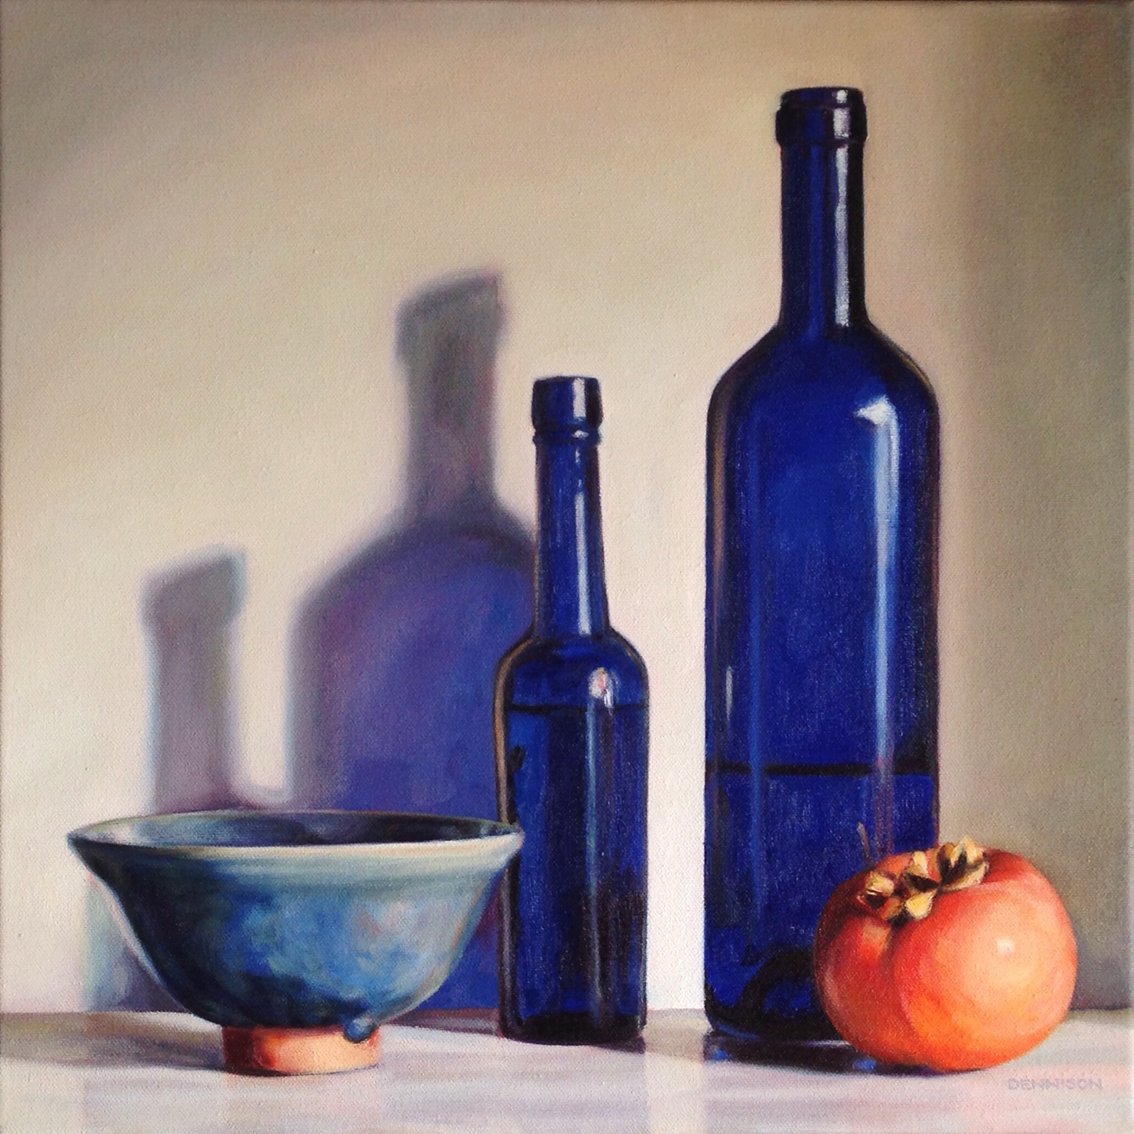 Blue Still Life with Persimmon   Oil on Canvas, 41cm x 41cm